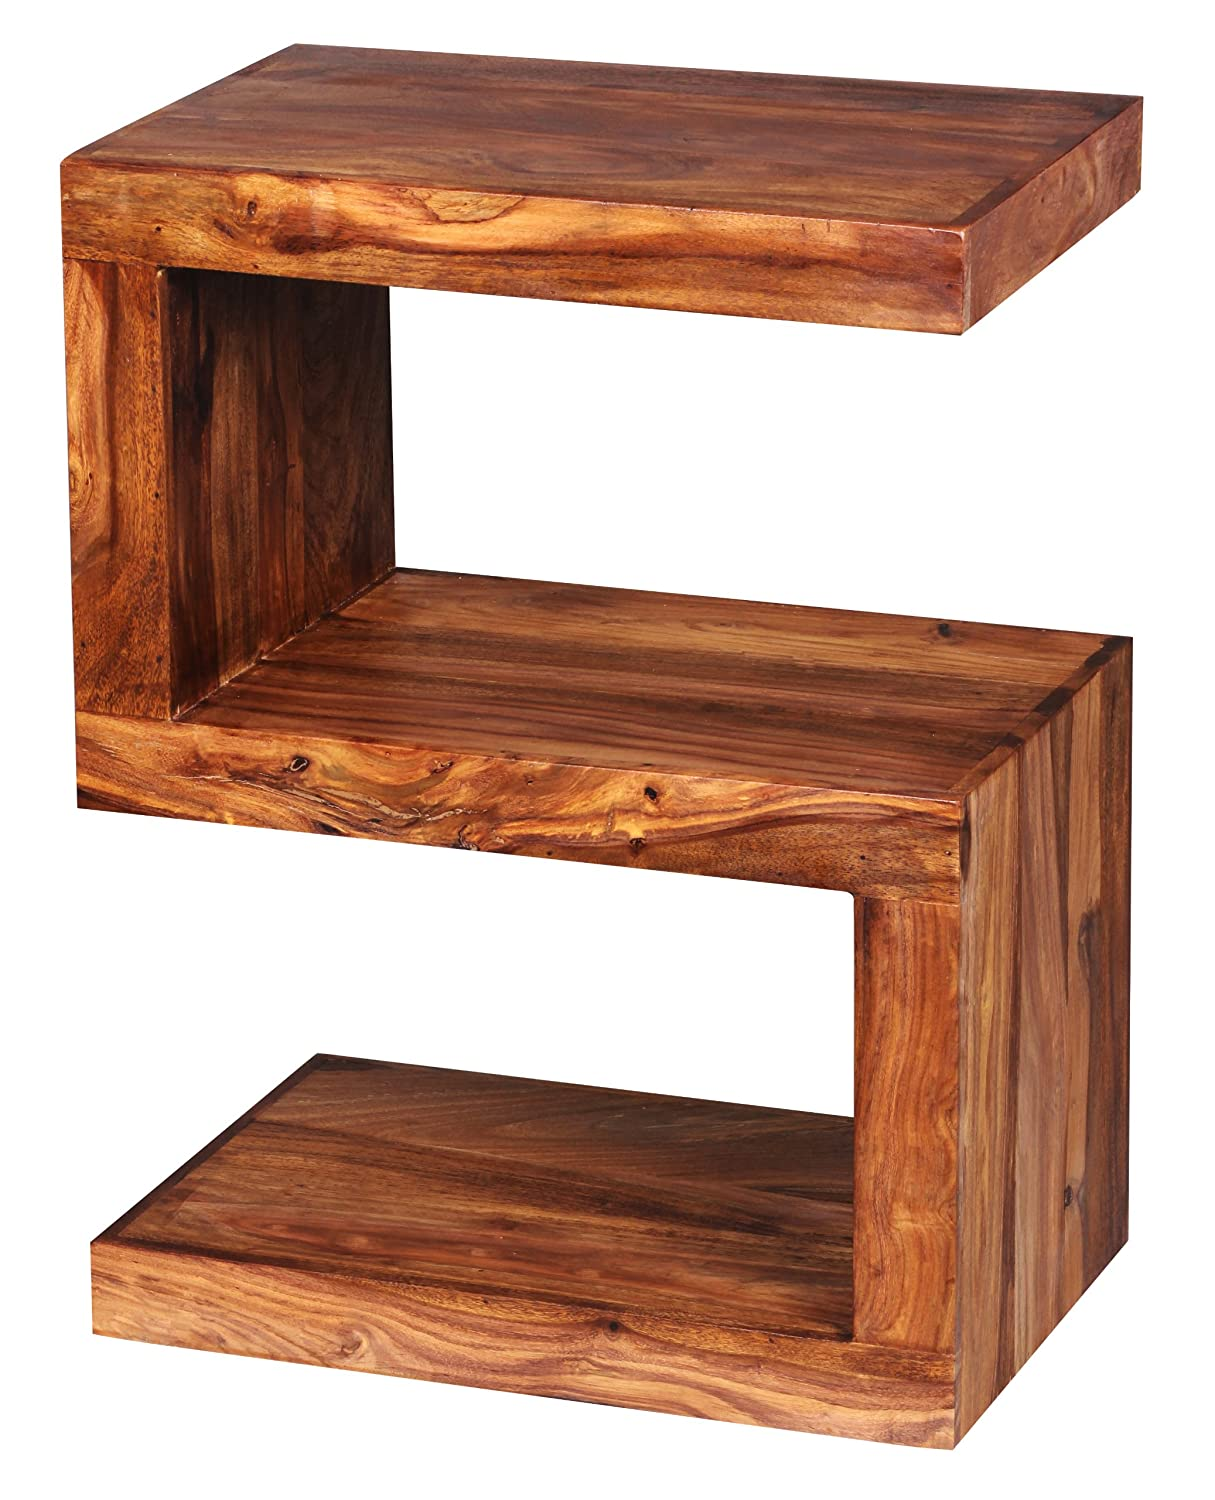 Wohnling Solid Wood Side Table S Cube 45 X 30 X 60cm With Shelf, Furniture  NEW: Amazon.co.uk: Kitchen U0026 Home